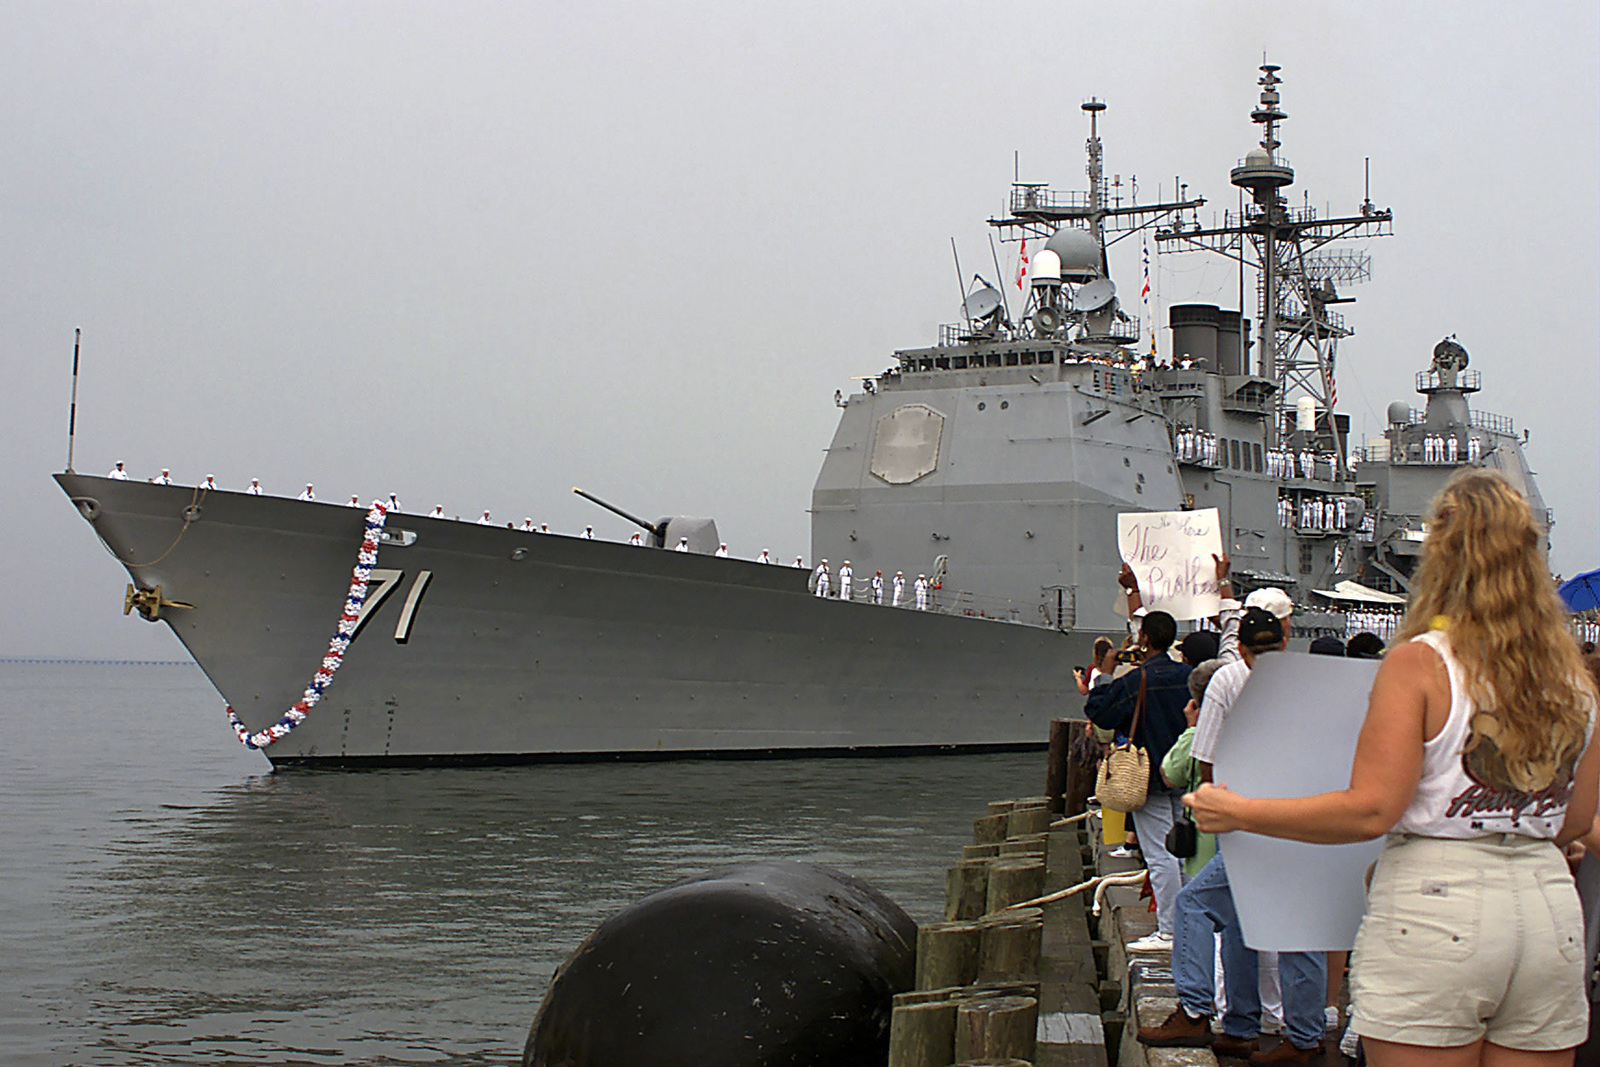 Spectators watch and wait for the arrival of friends and family members aboard the USS CAPE ST. GEORGE (CG 71), at a pier on Naval Station Norfolk, Virginia